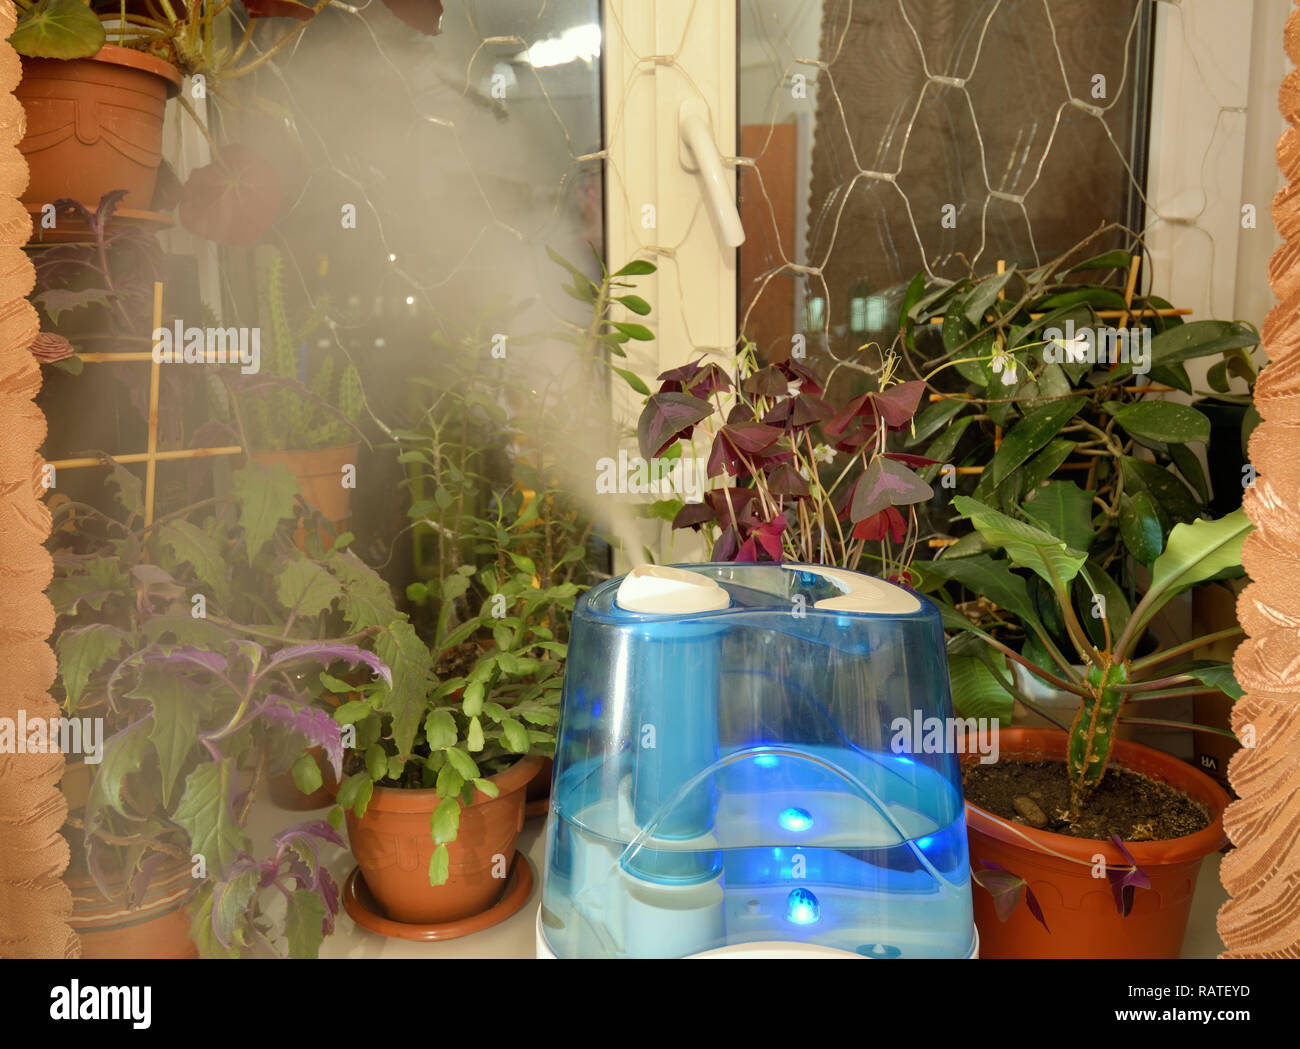 To create a comfortable microclimate in the apartment. - Stock Image